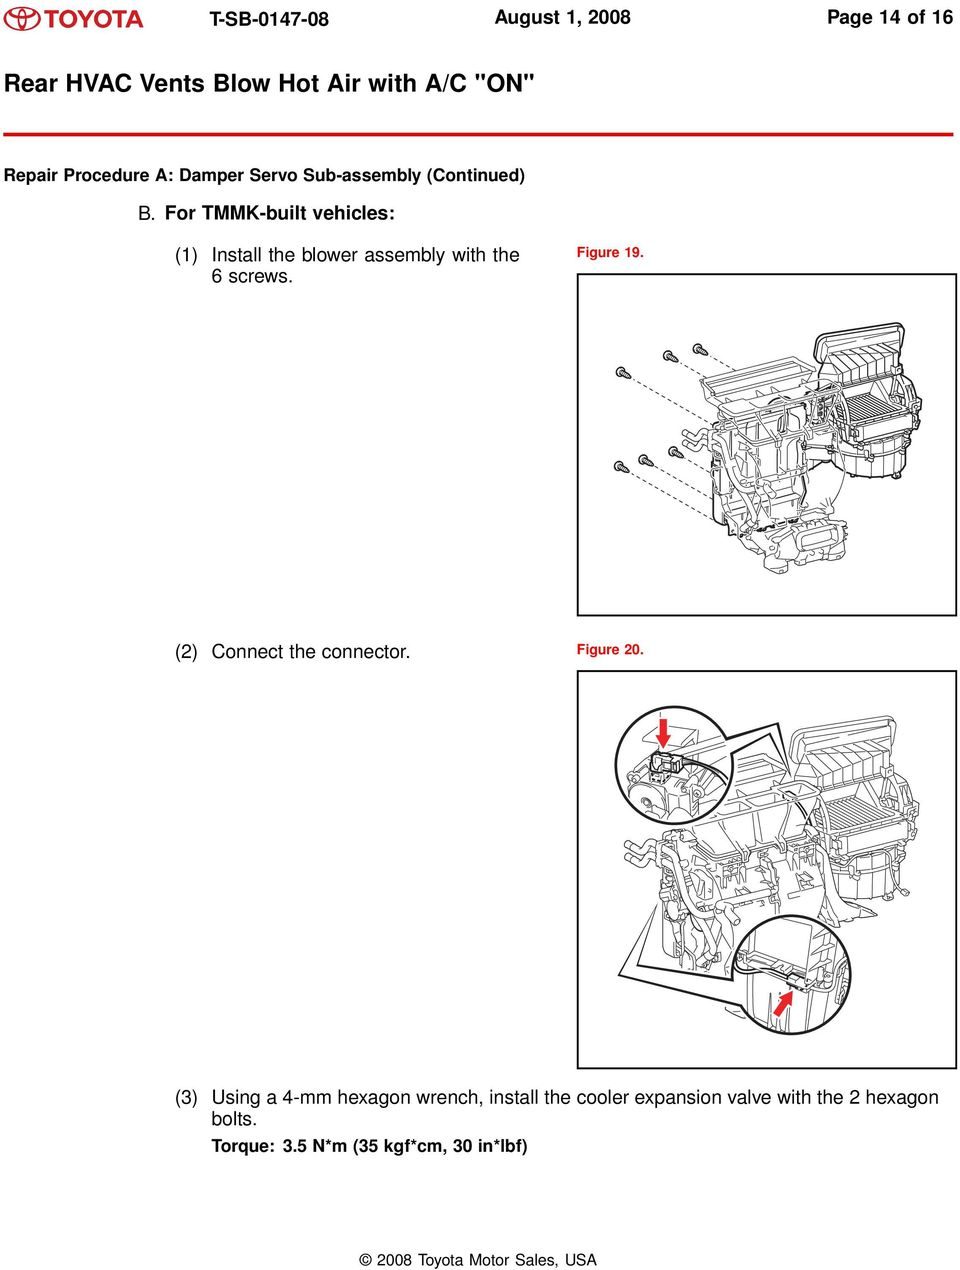 Toyota Sienna Service Manual: Blower unit (for rear air conditioning system)